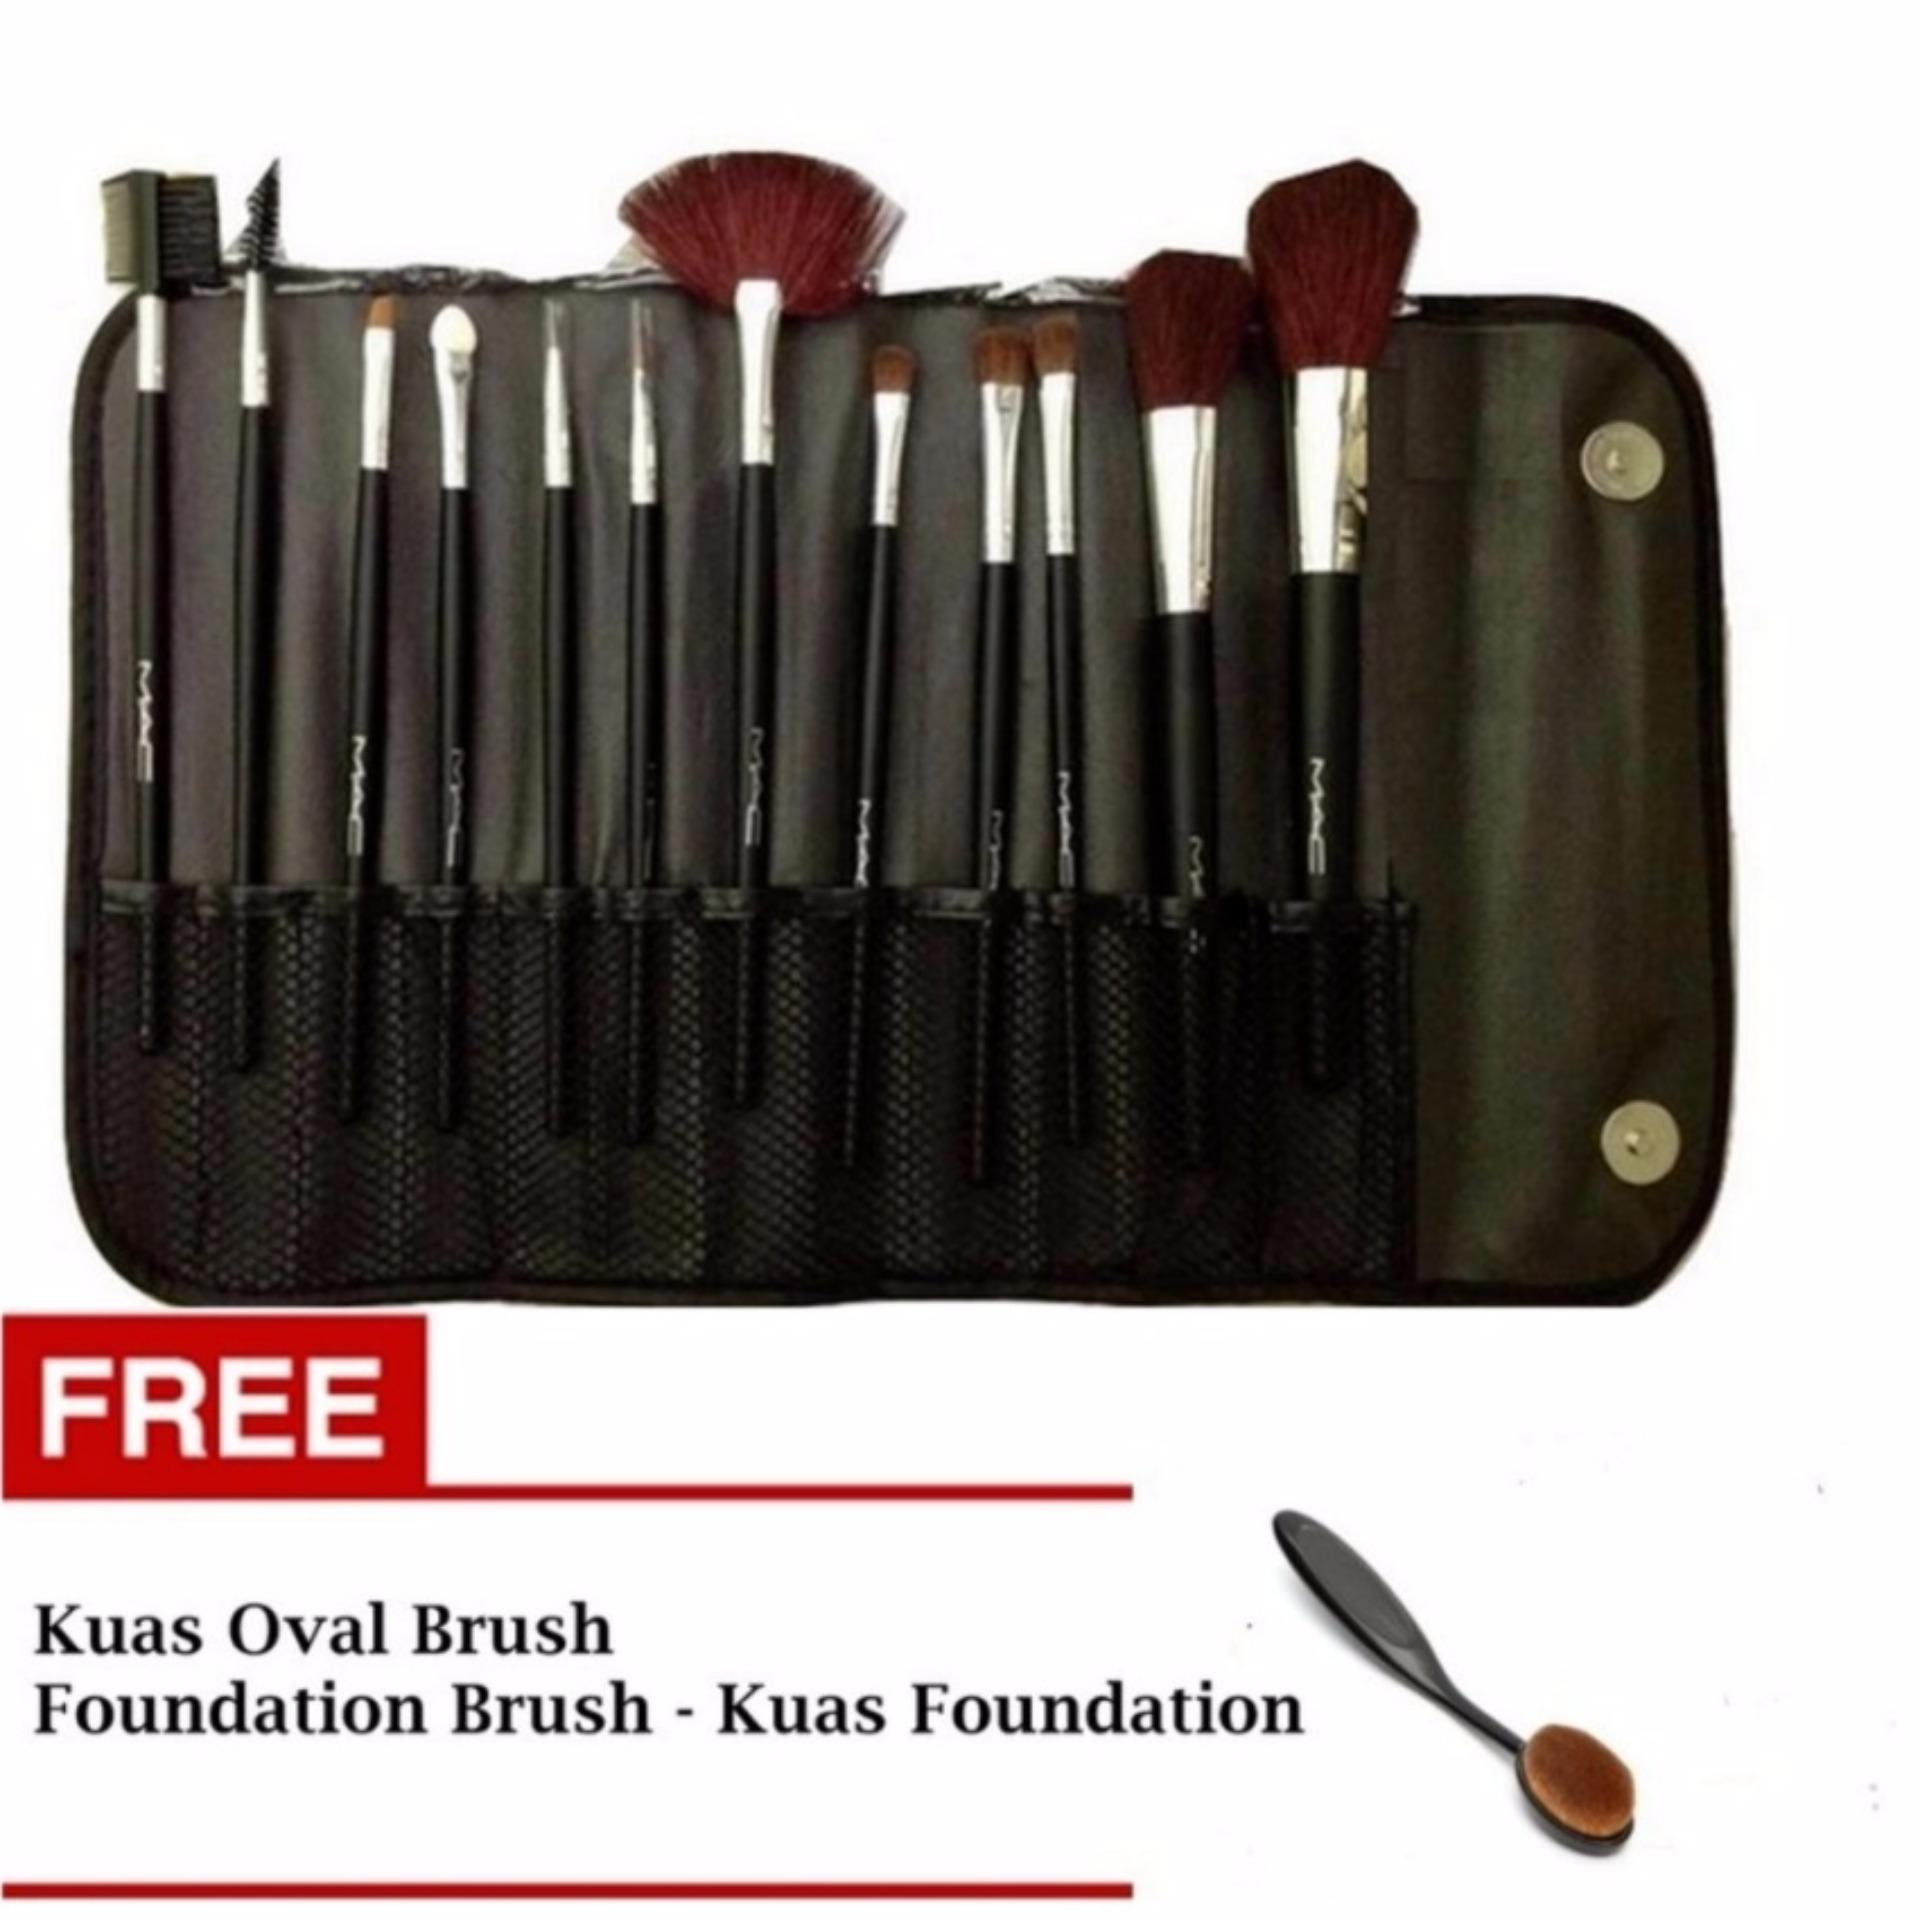 Kuas Make Up Set Kemasan Dompet - 12 Pcs + Gratis Oval Brush